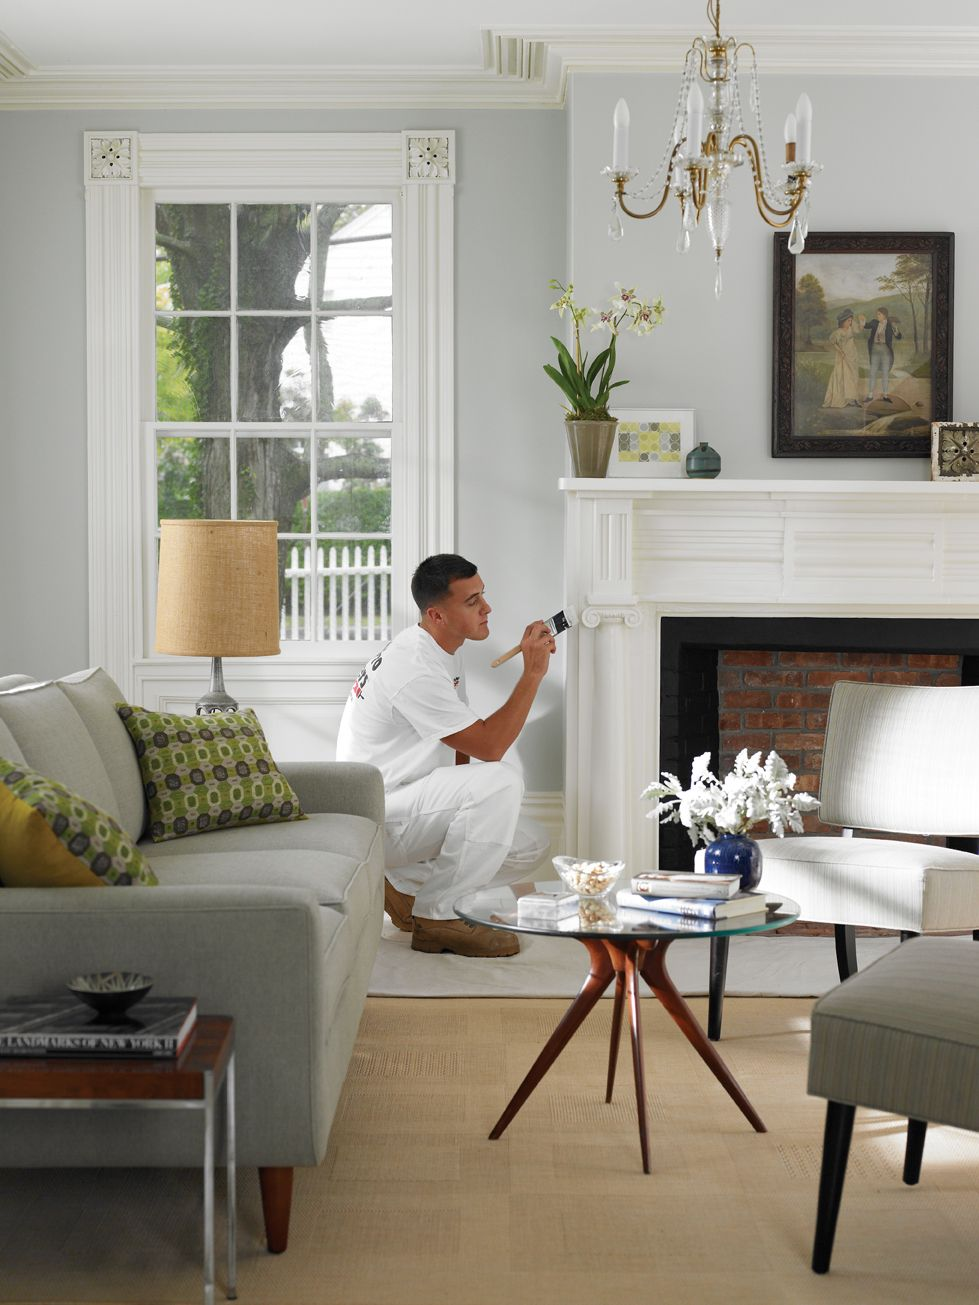 interior painting ideas posts related to basic colors in interior